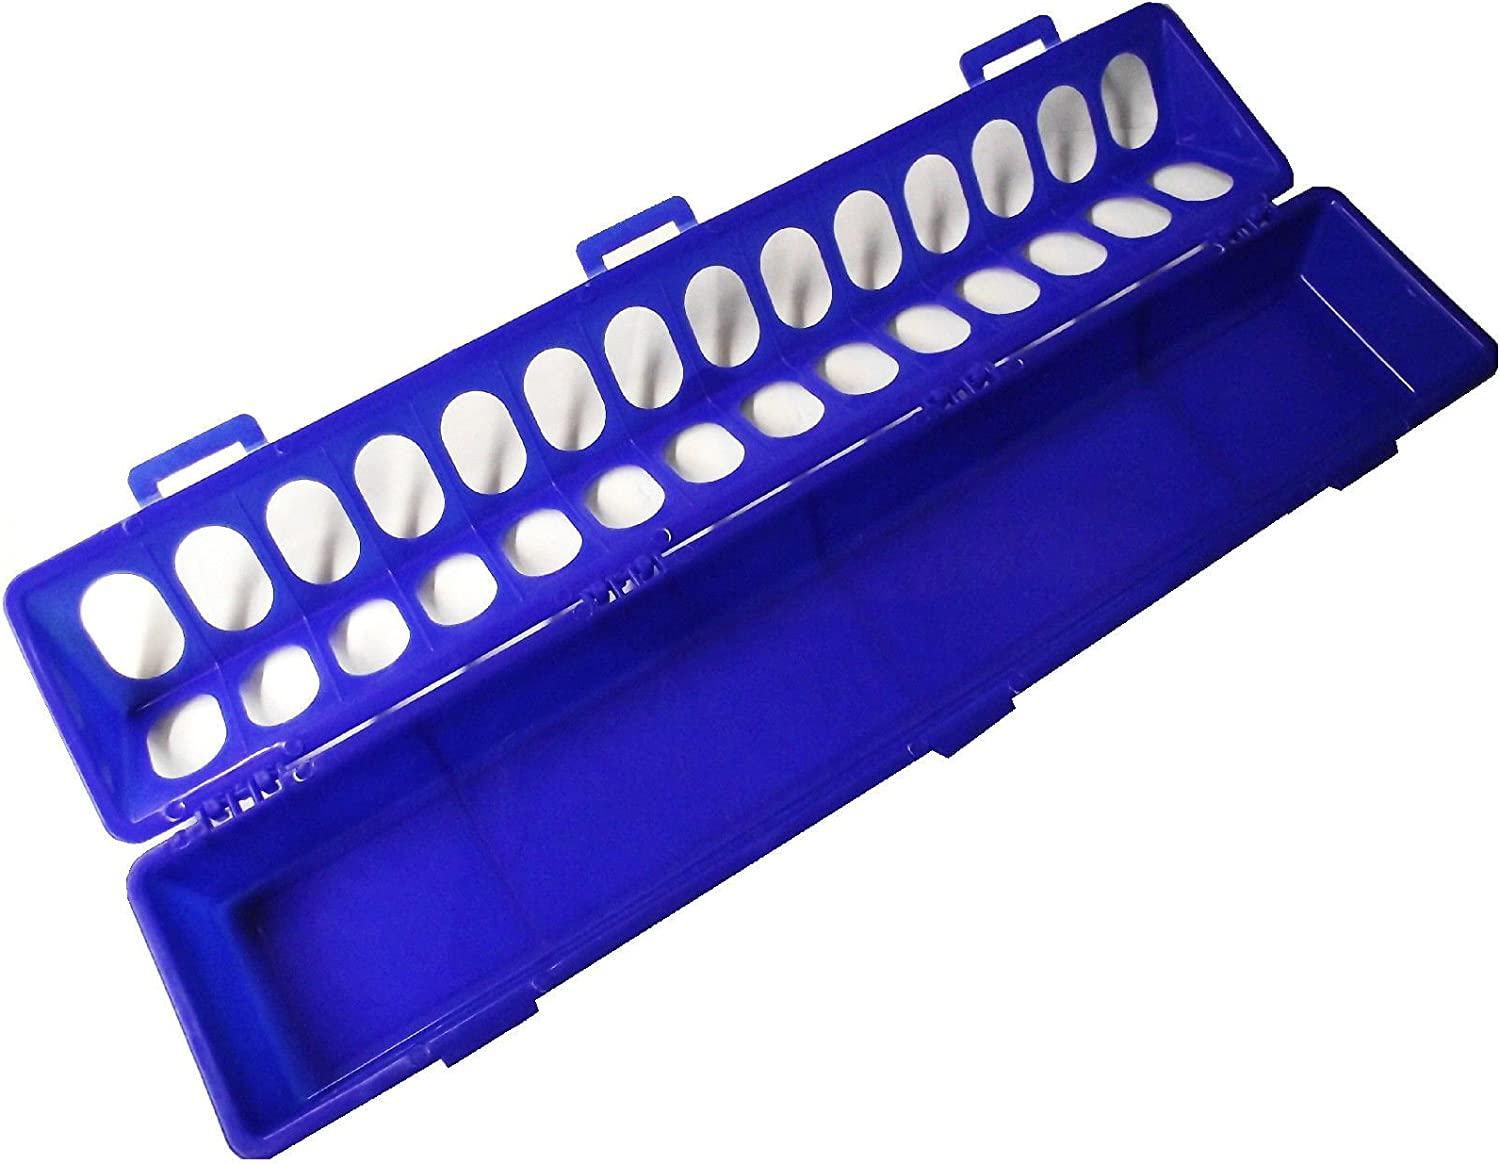 20 BLUE RITE RARM PRODUCTS POLY FLIP TOP CHICKEN FEEDER 28 HOLE FOR POULTRY CHICK